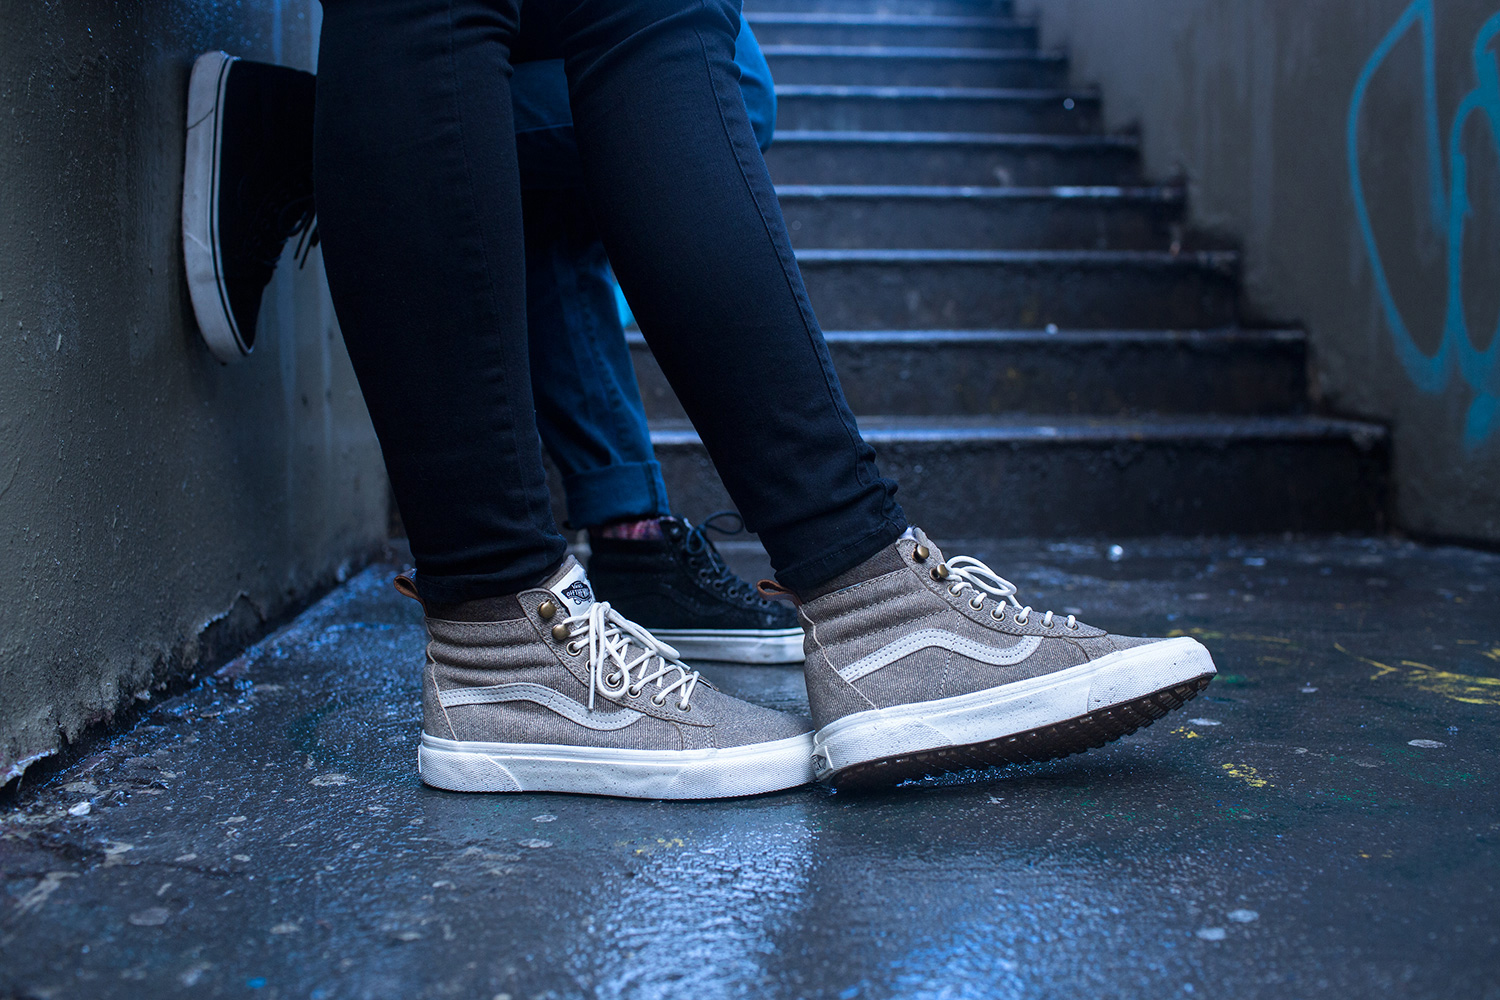 Vans Launches All Weather MTE Line – WWD